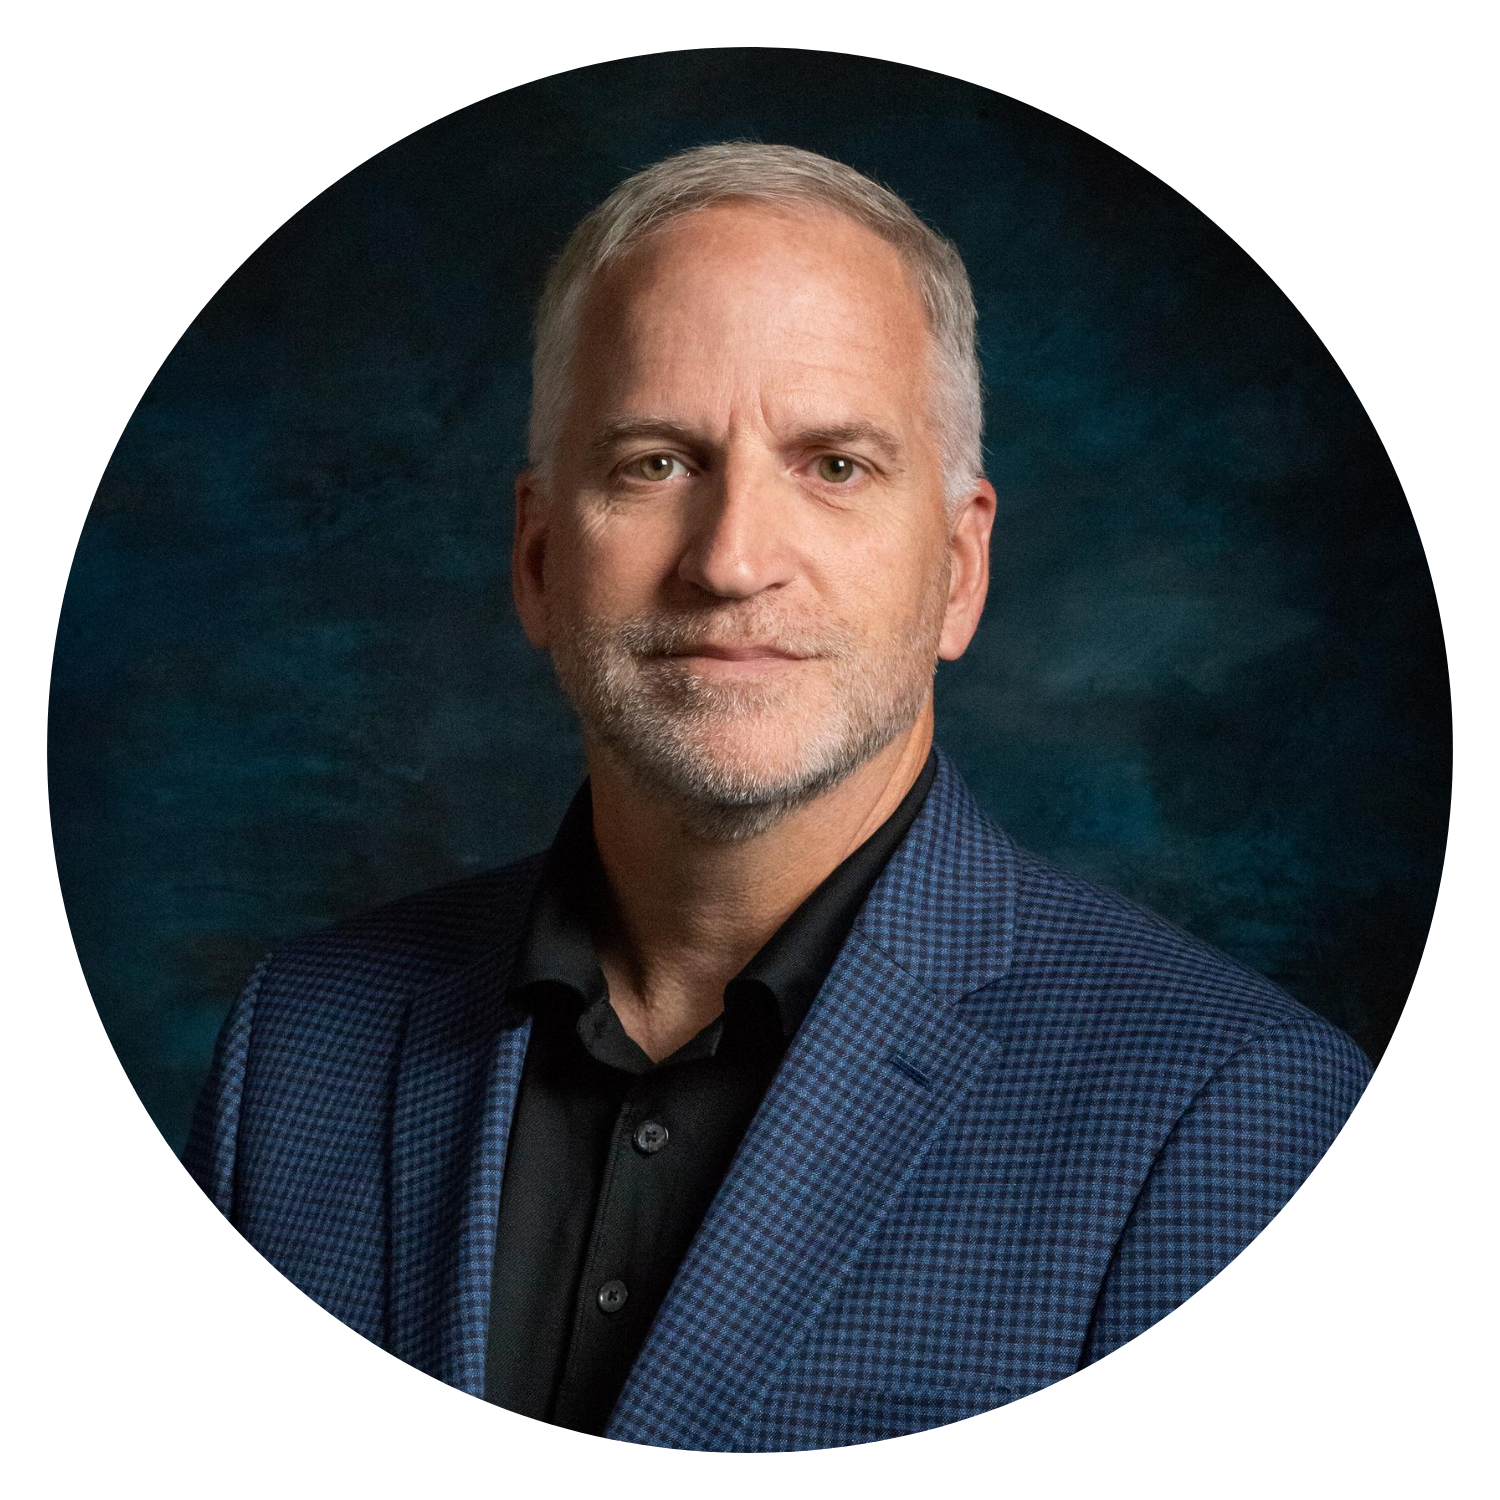 Mr. Robert Cardillo, President, The Cardillo Group